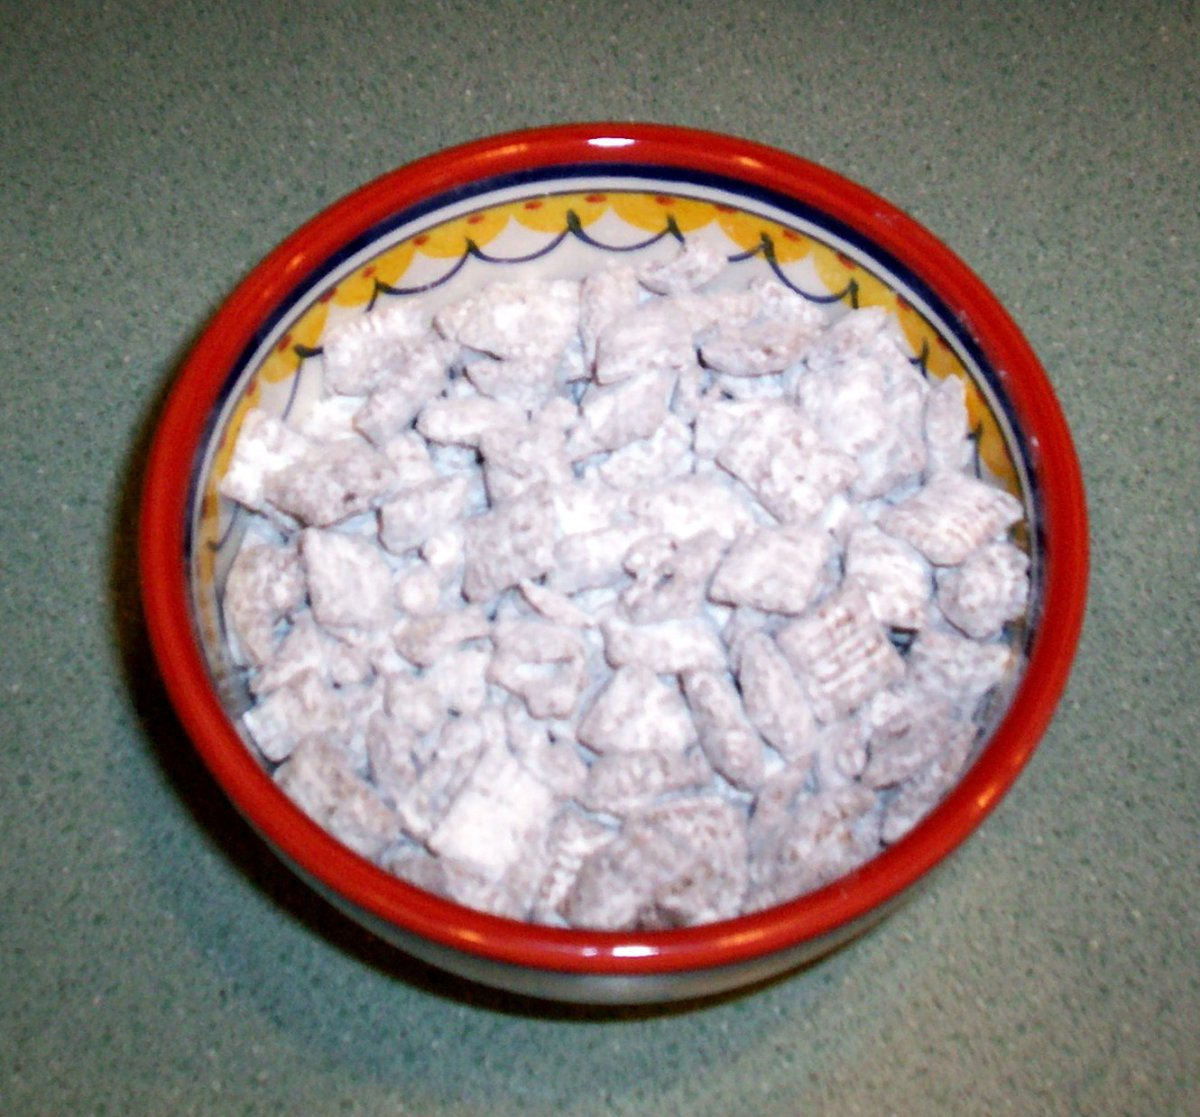 Party food? You can't go wrong with puppy chow!